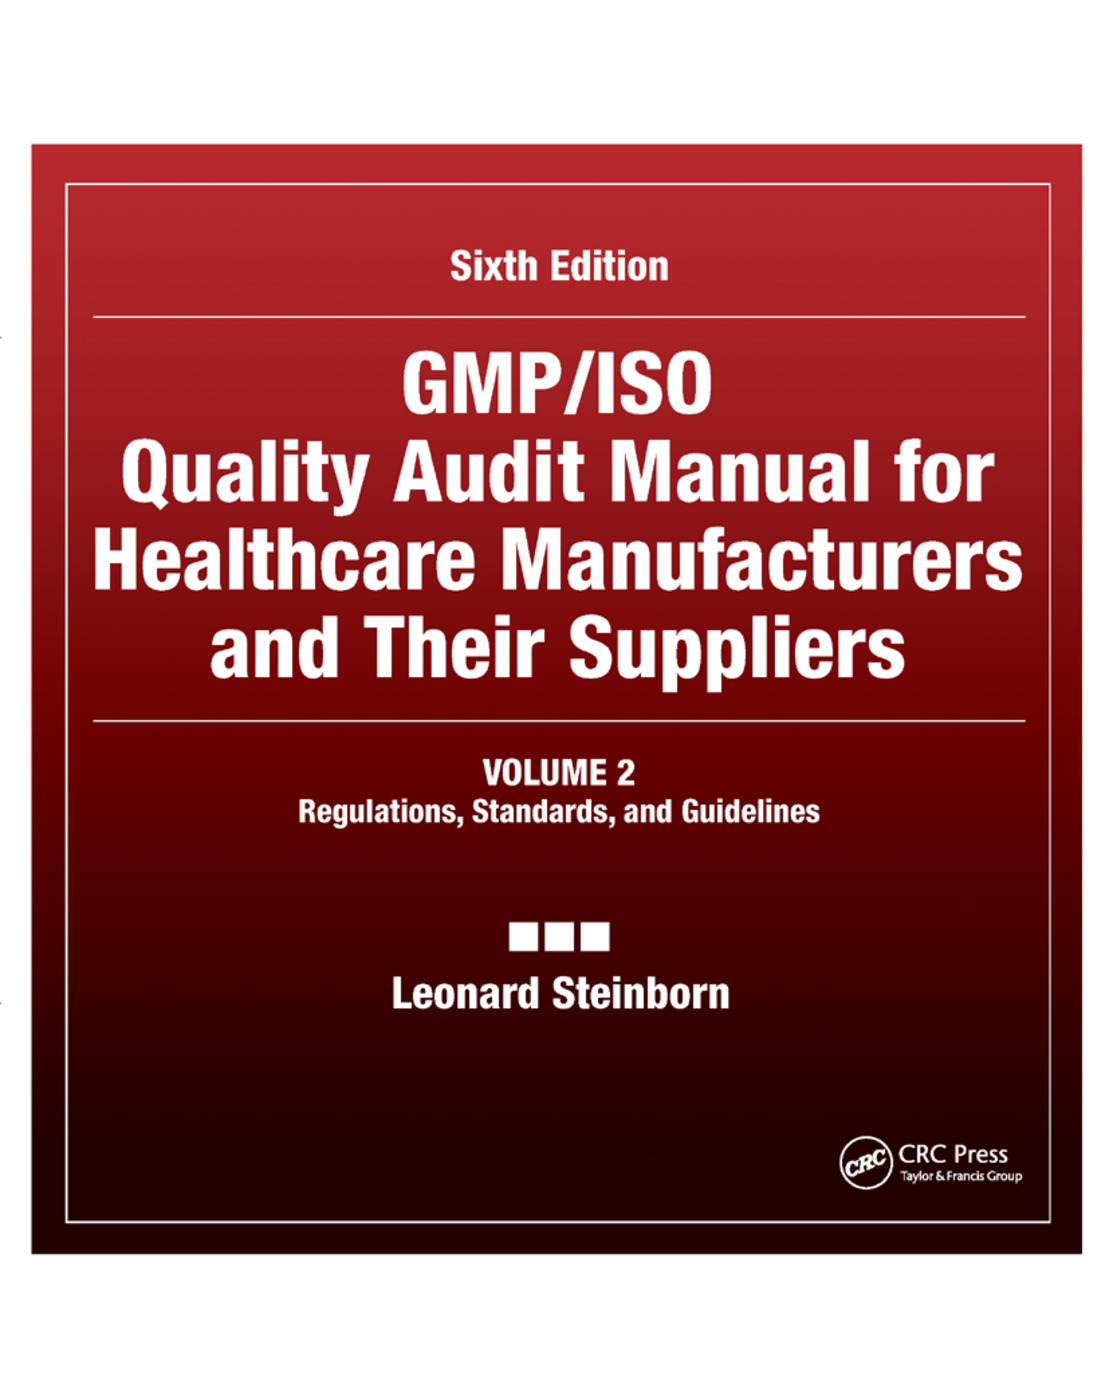 GMP/ISO Quality Audit Manual for Healthcare Manufacturers and Their Suppliers, (Volume 2 - Regulations, Standards, and Guidelines): Regulations, Standards, and Guidelines, 6th Edition (Paperback) book cover